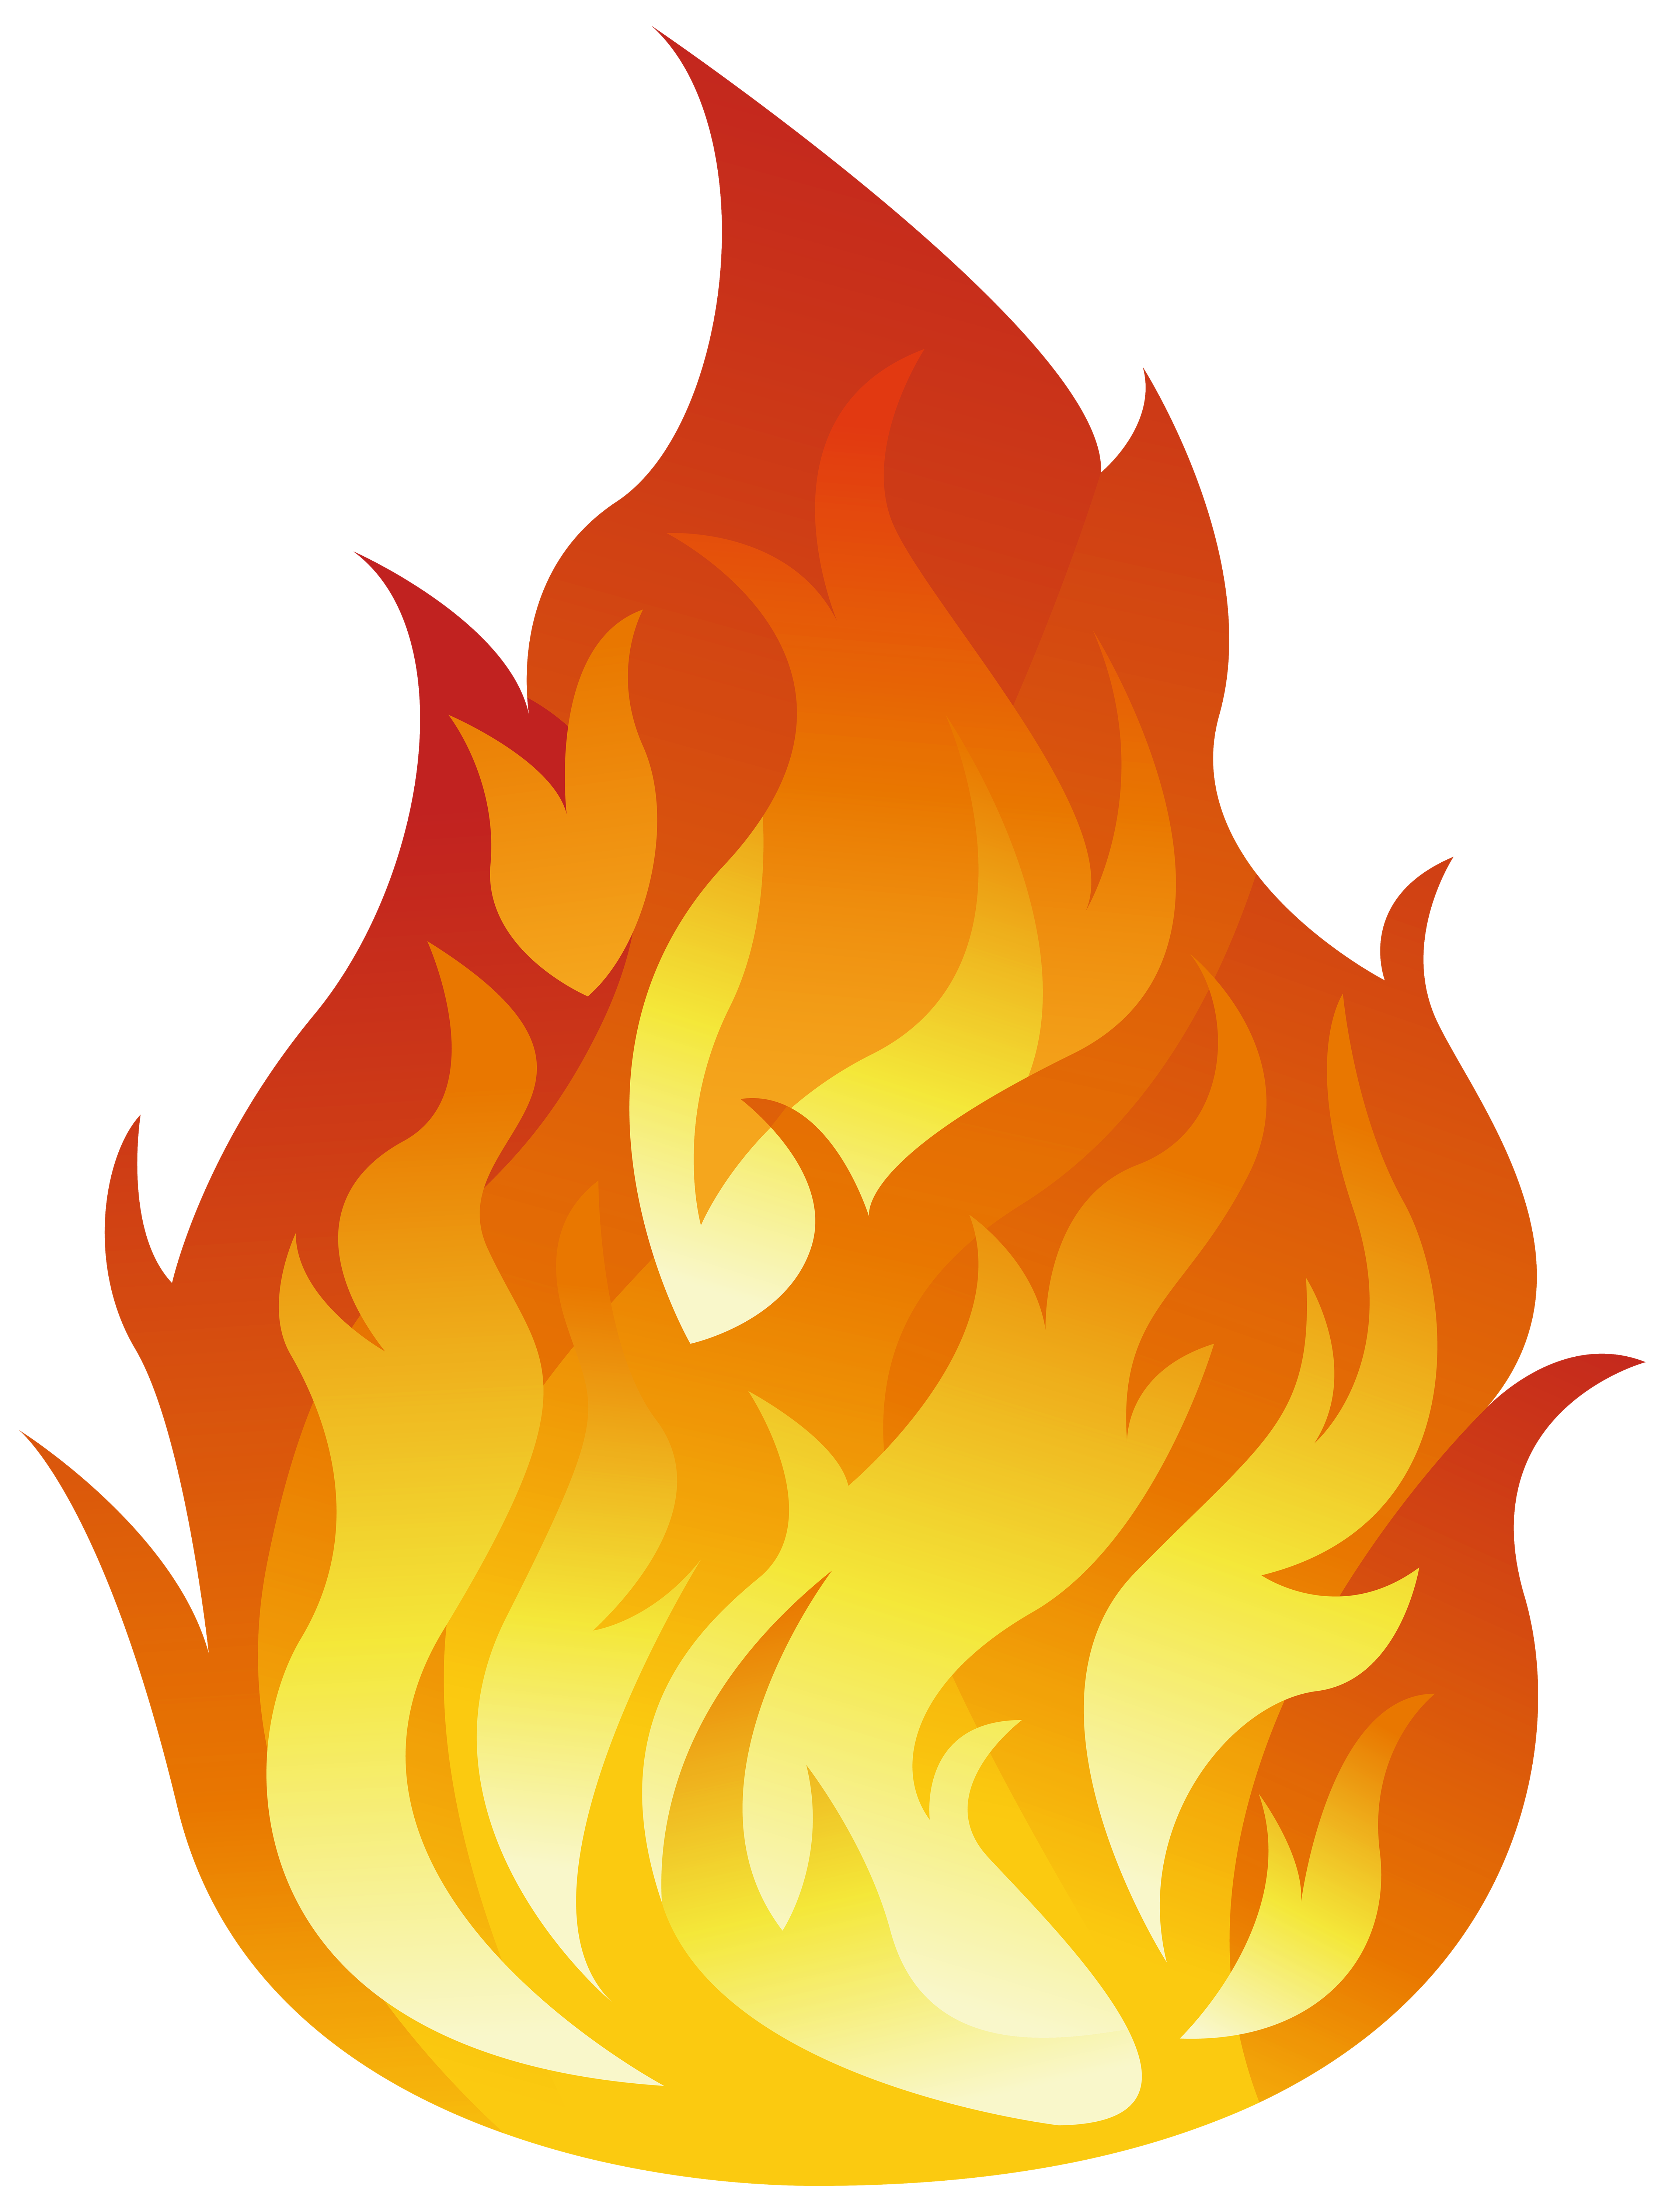 flame png clipart best